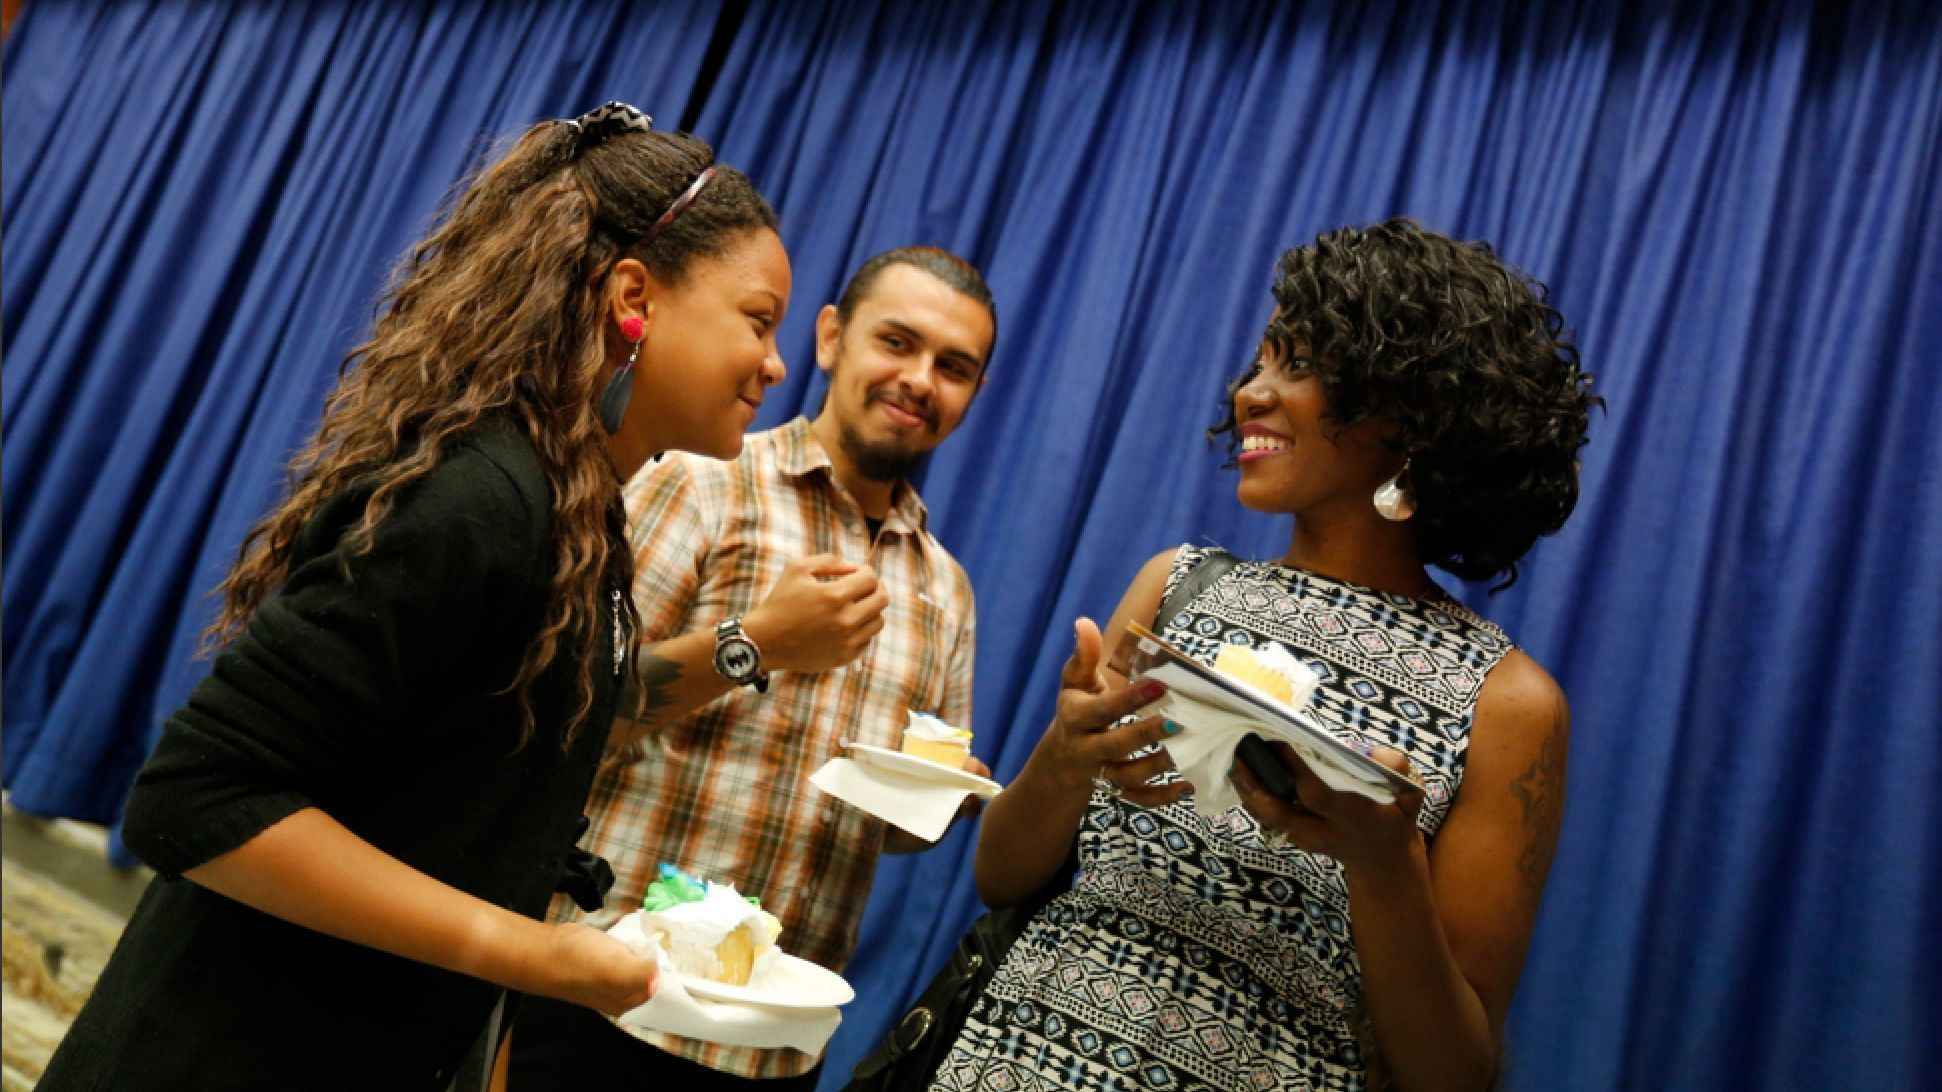 Angelica, Sanchez and Baker enjoyed cake after a reception following Angelica's sixth grade graduation.